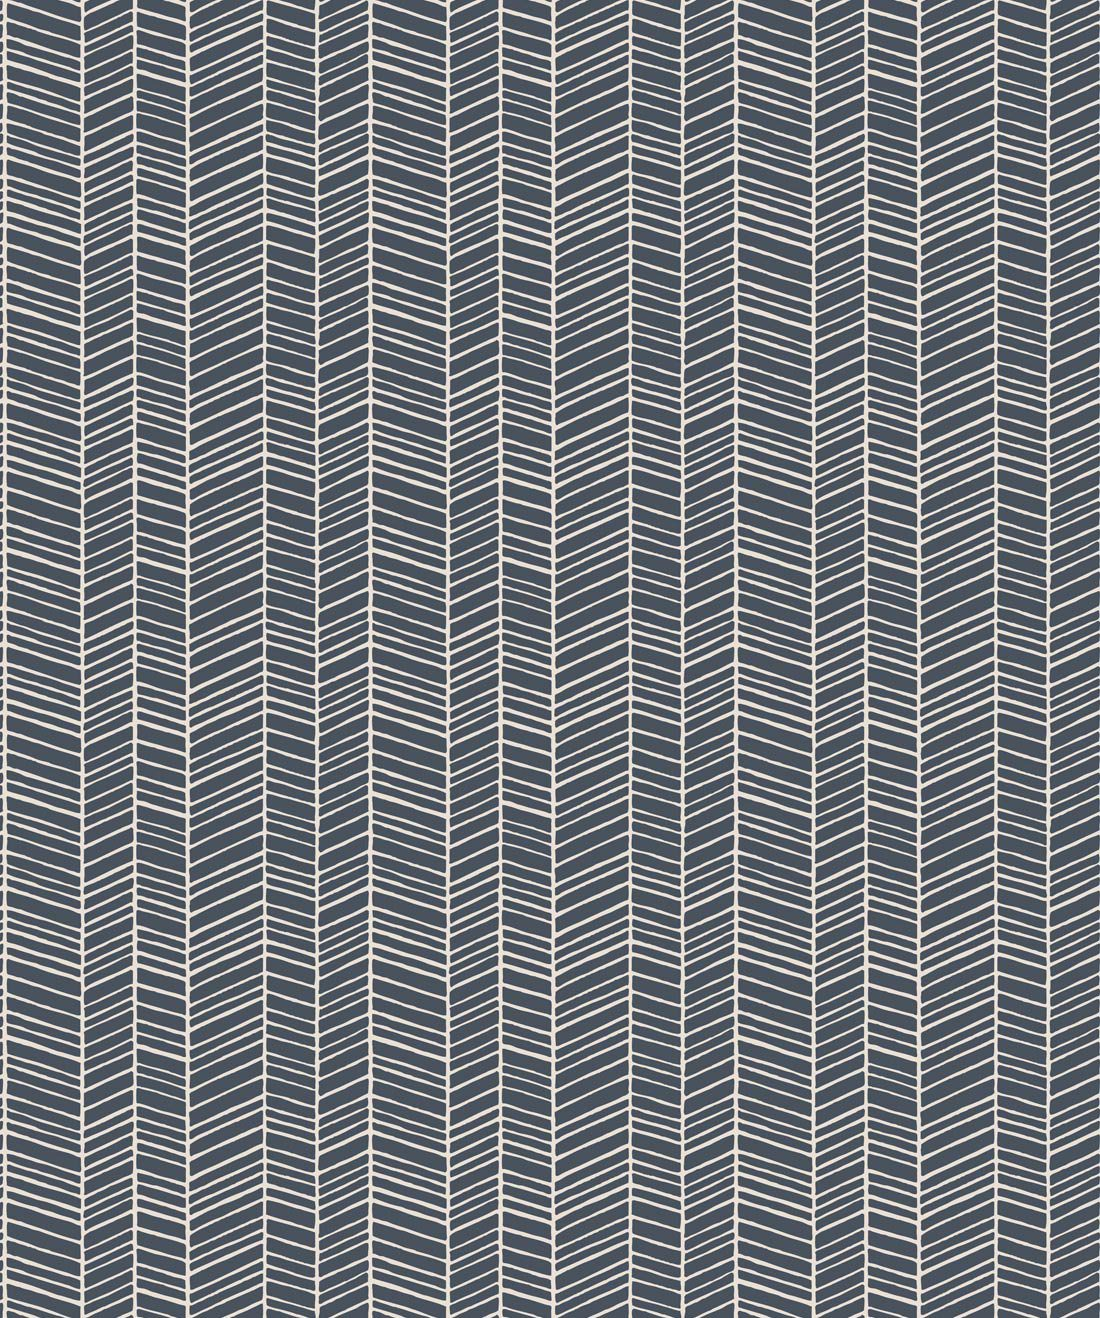 Herringbone Thunderbolt Blue Wallpaper